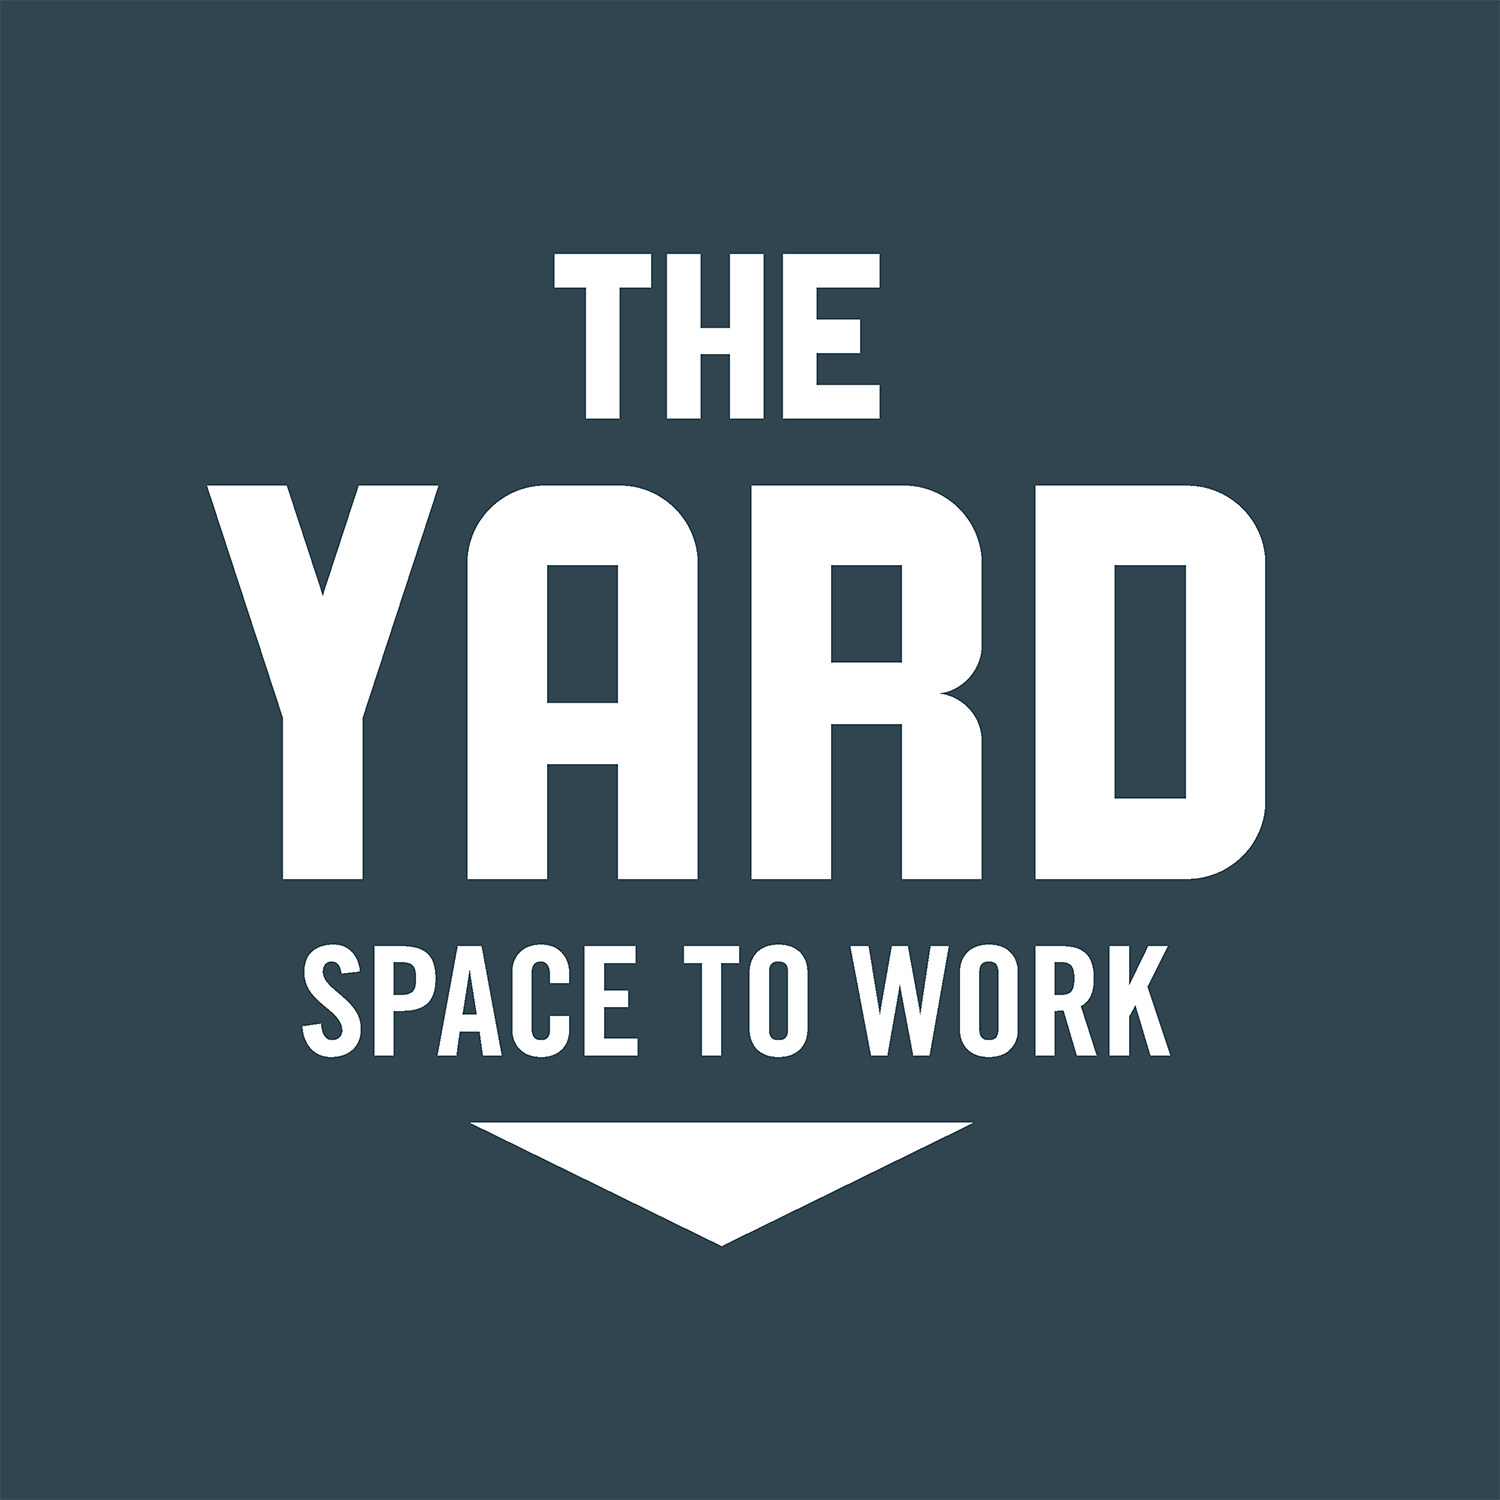 Copy of The Yard